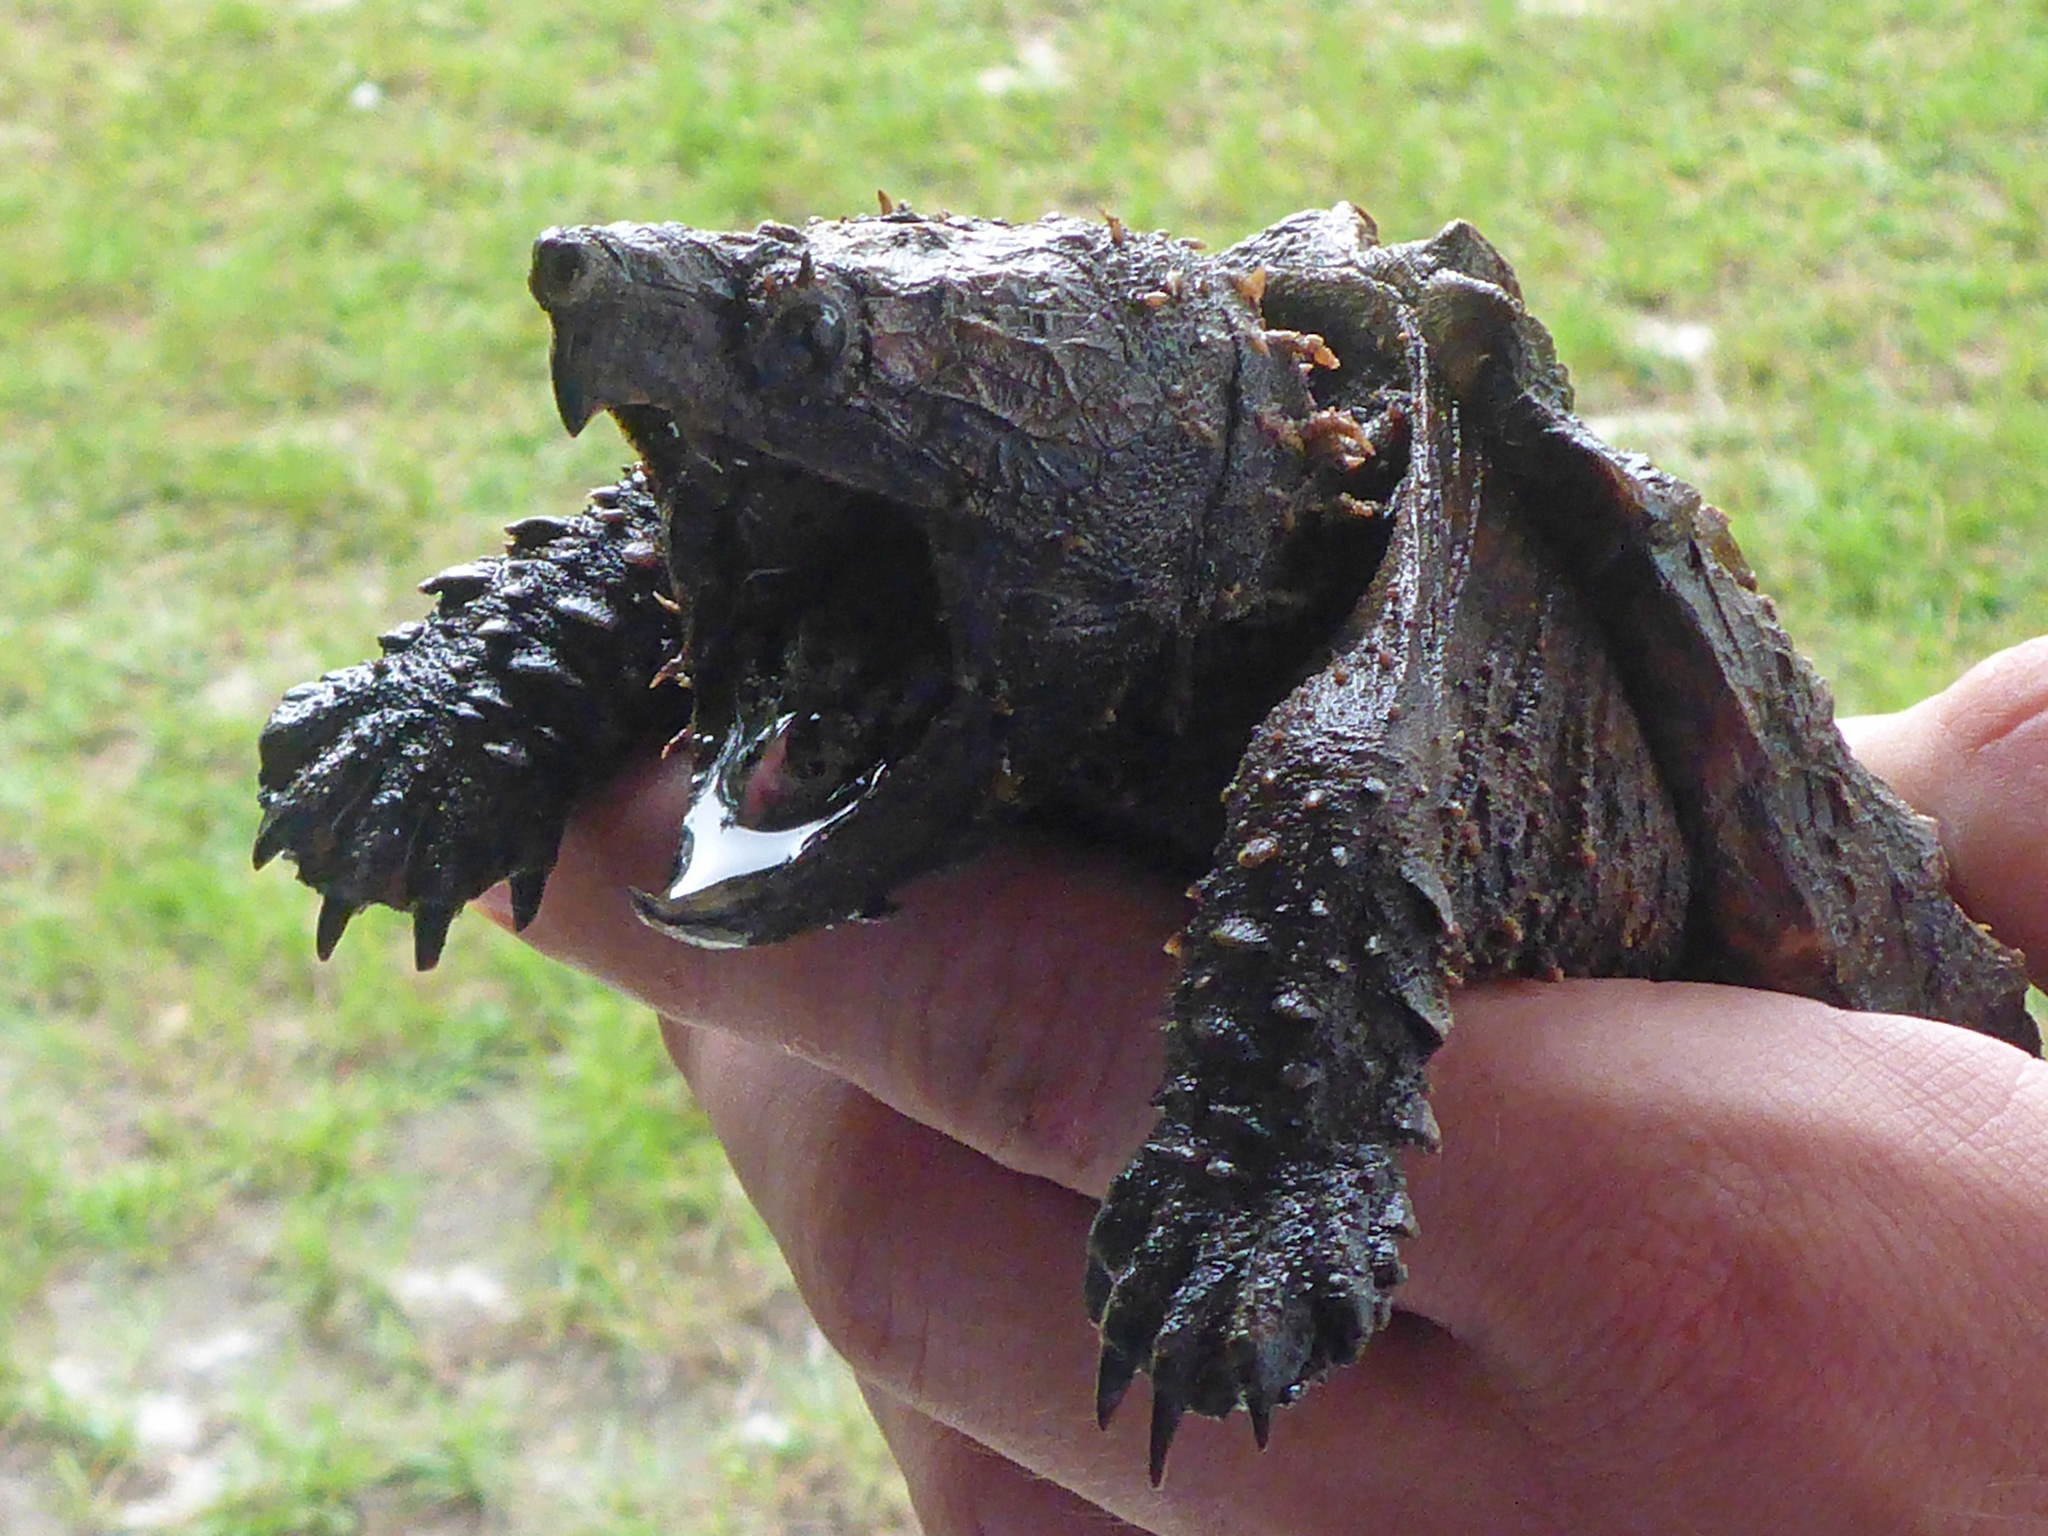 Image of Suwannee alligator snapping turtle